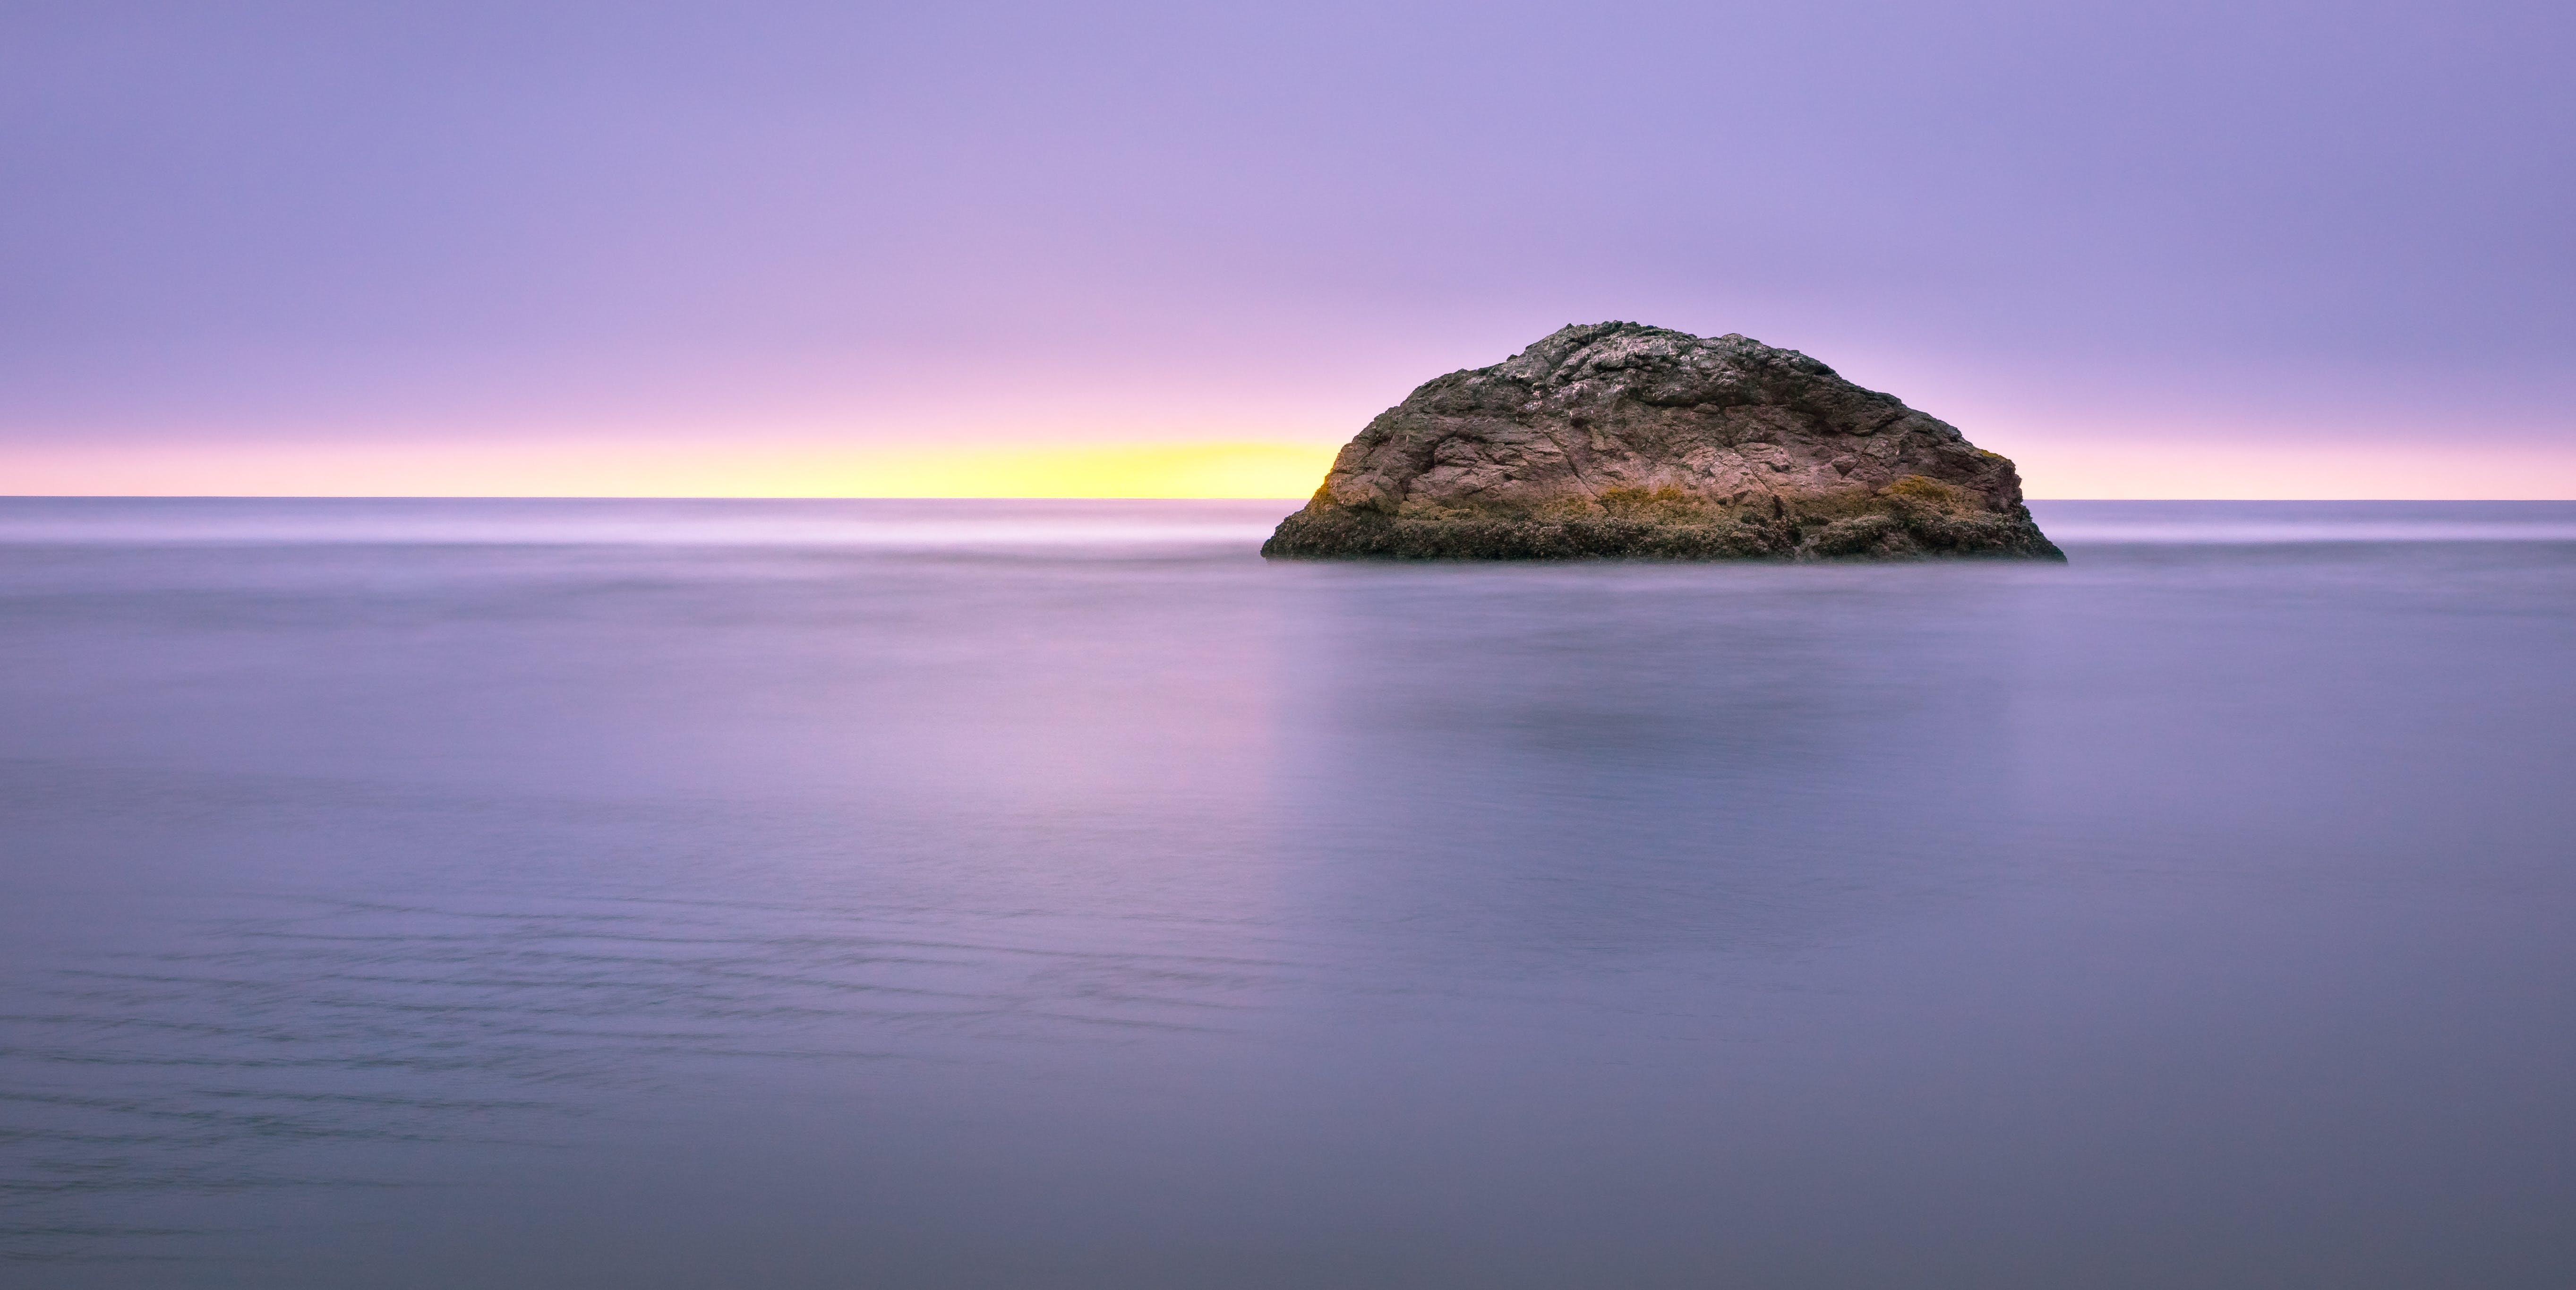 Photo of Island on Sea during Sunset